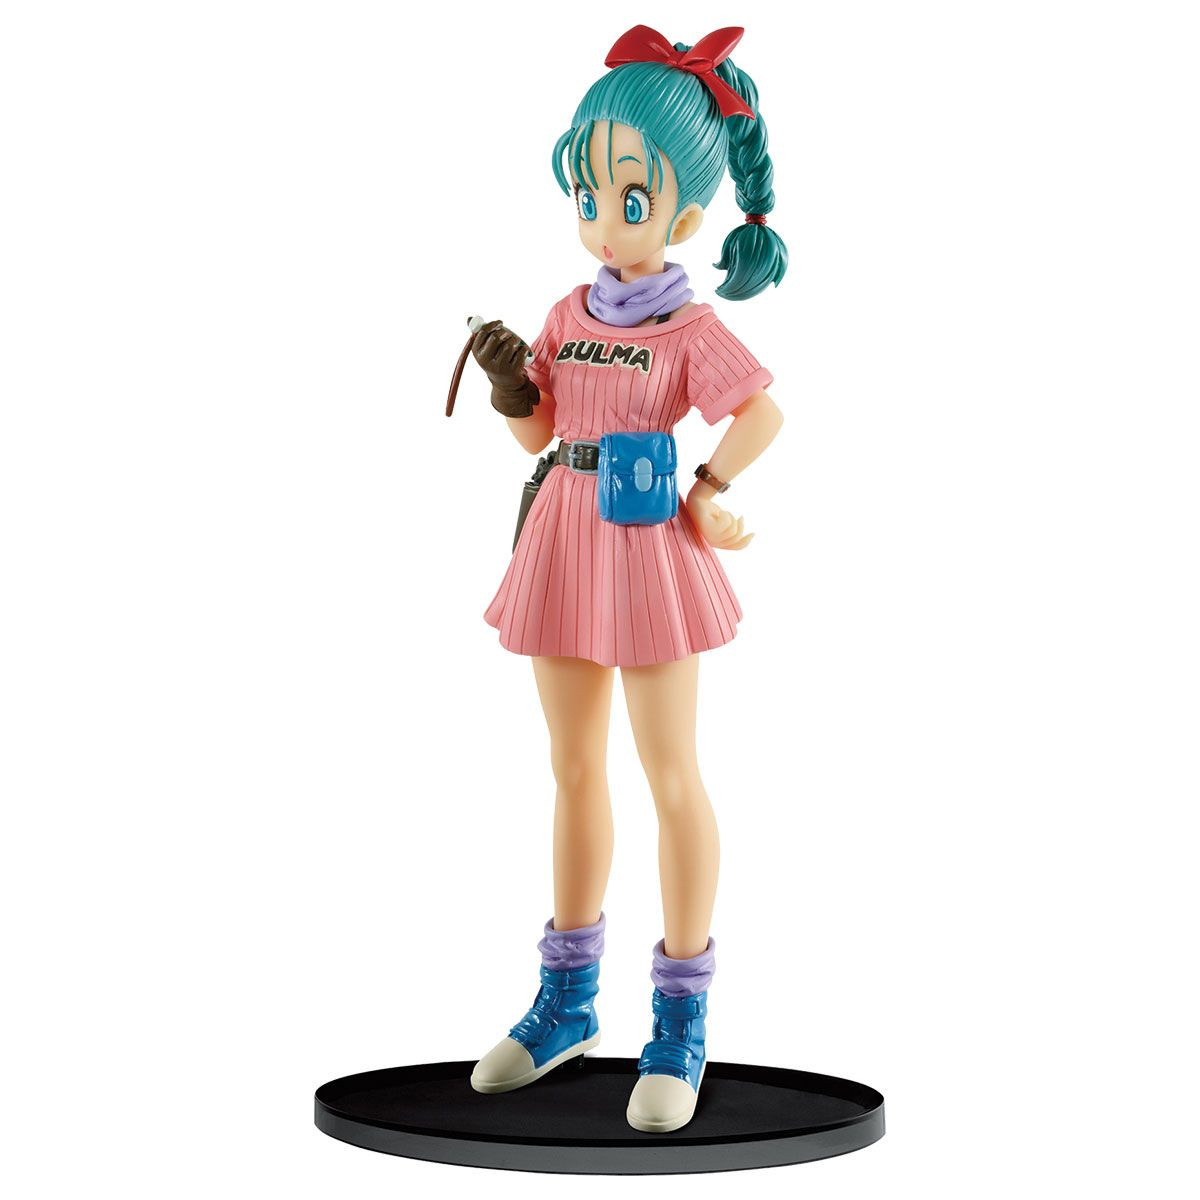 Estátua Bulma: Dragon Ball Z - Banpresto - CG